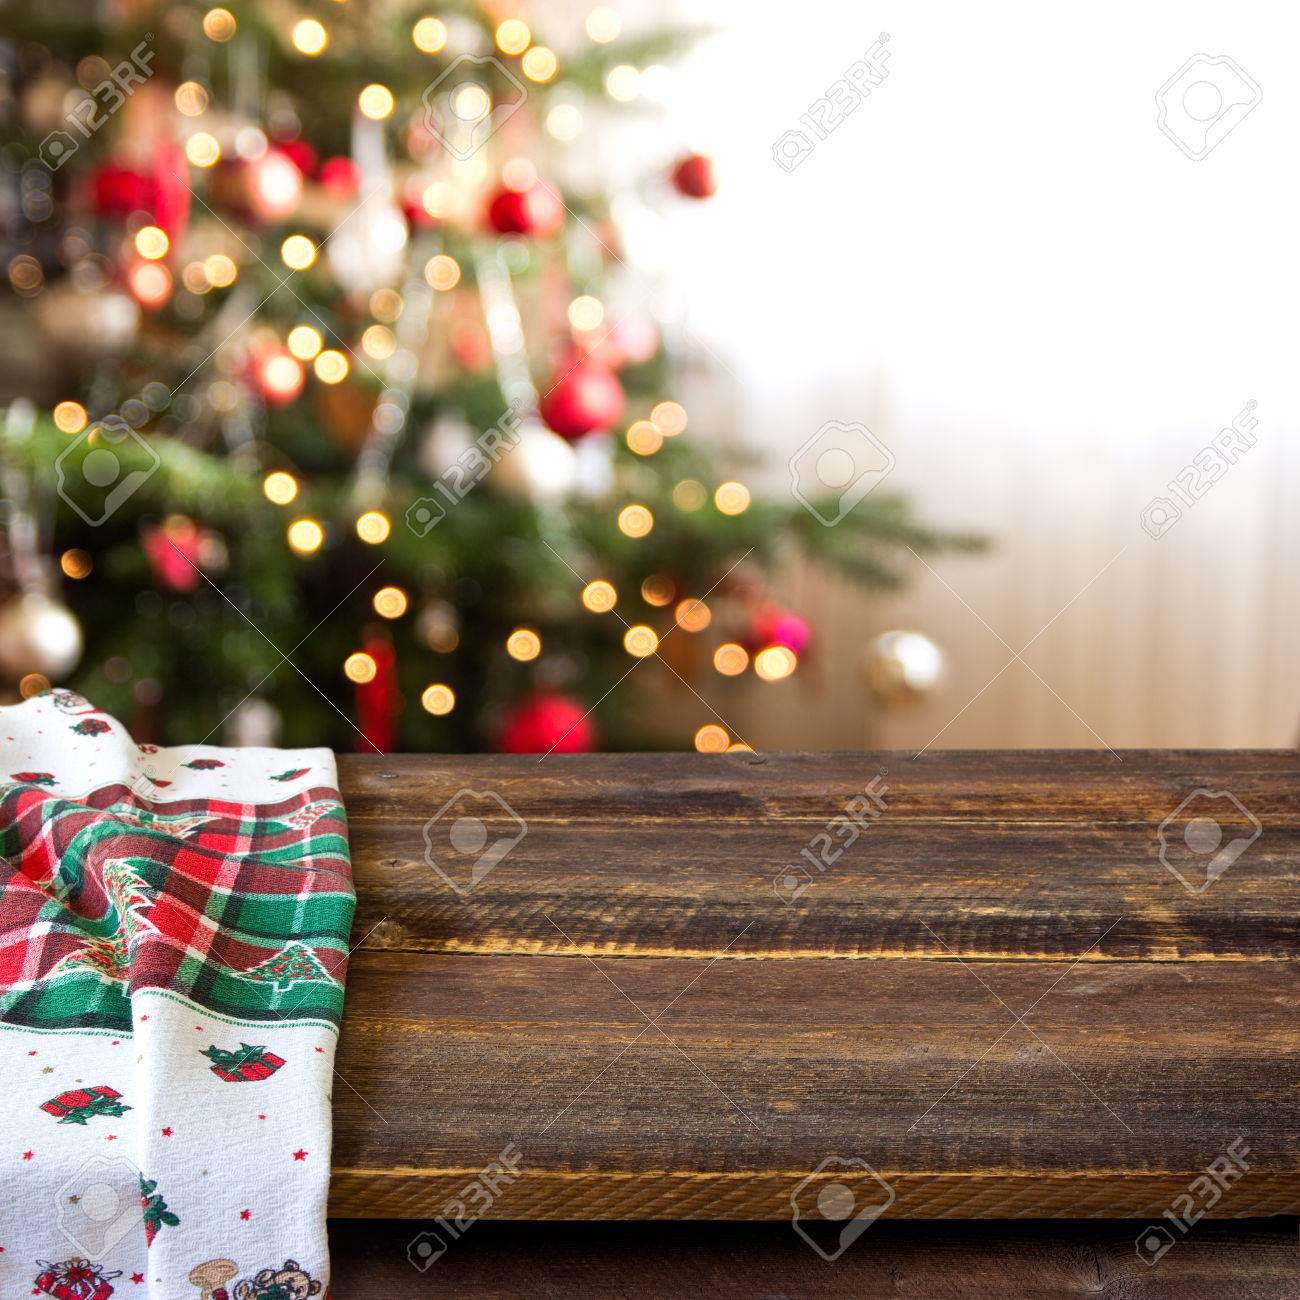 christmas table background - 32572158